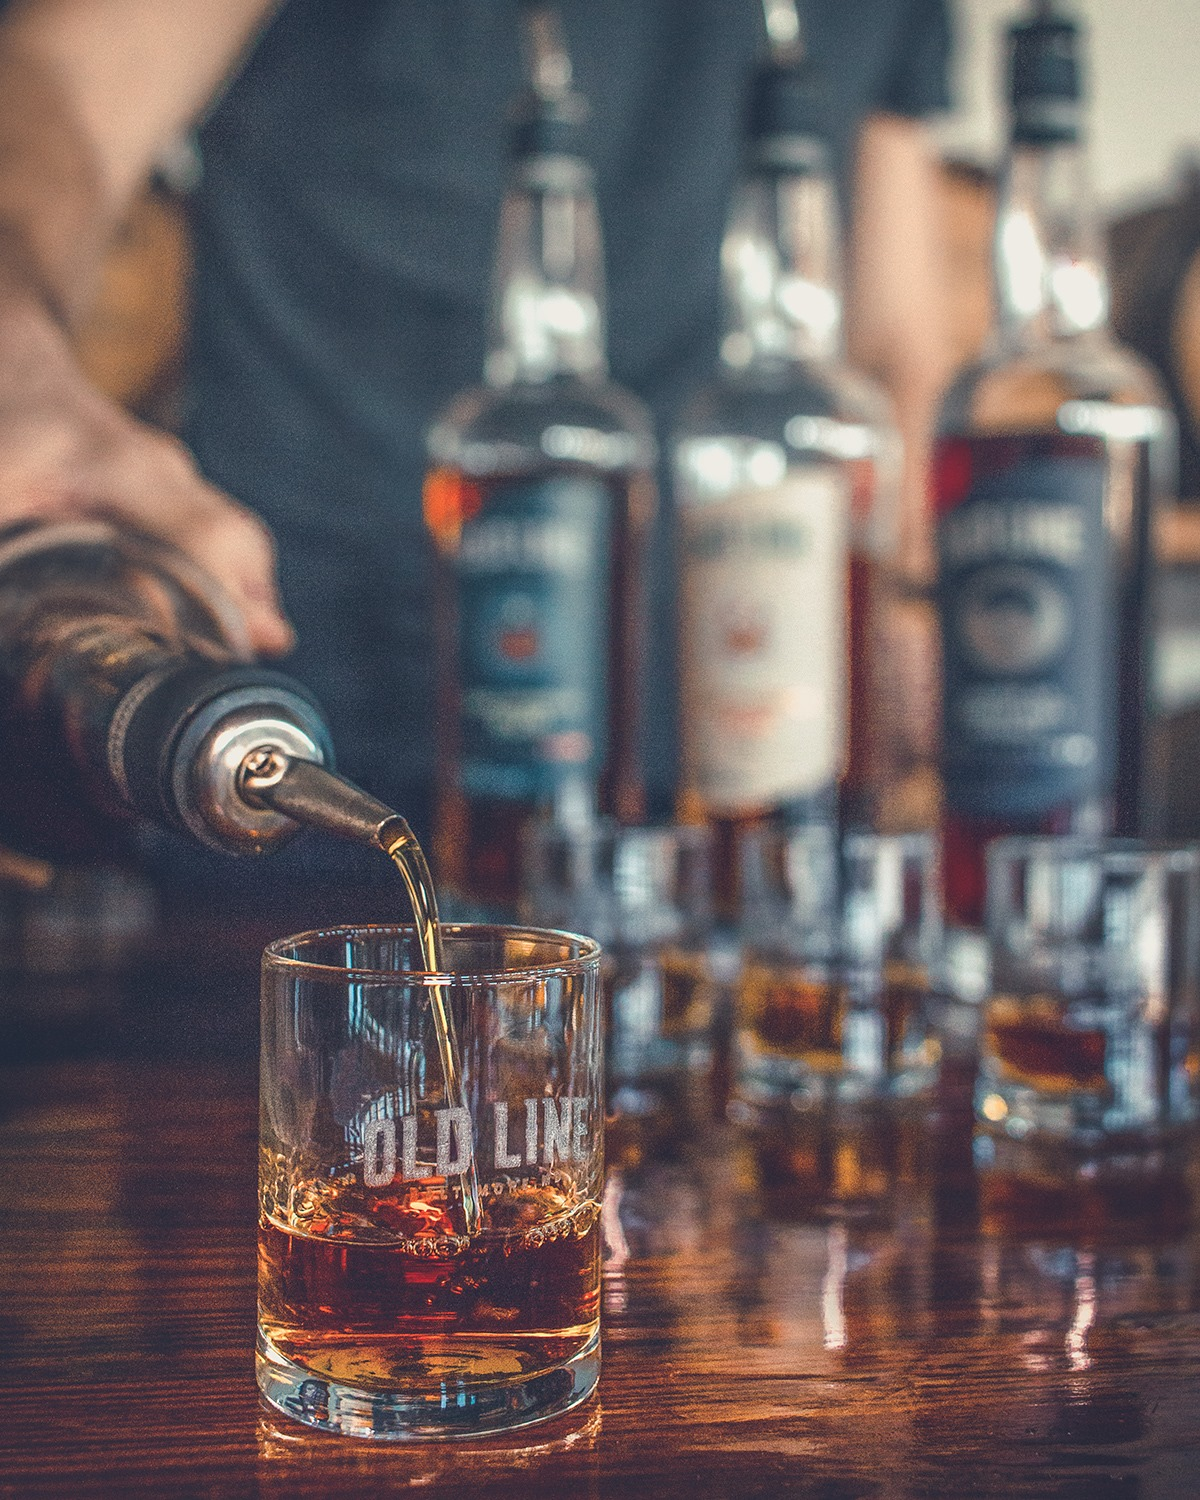 Old Line Spirits Whiskey Distillery Tour and Tasting